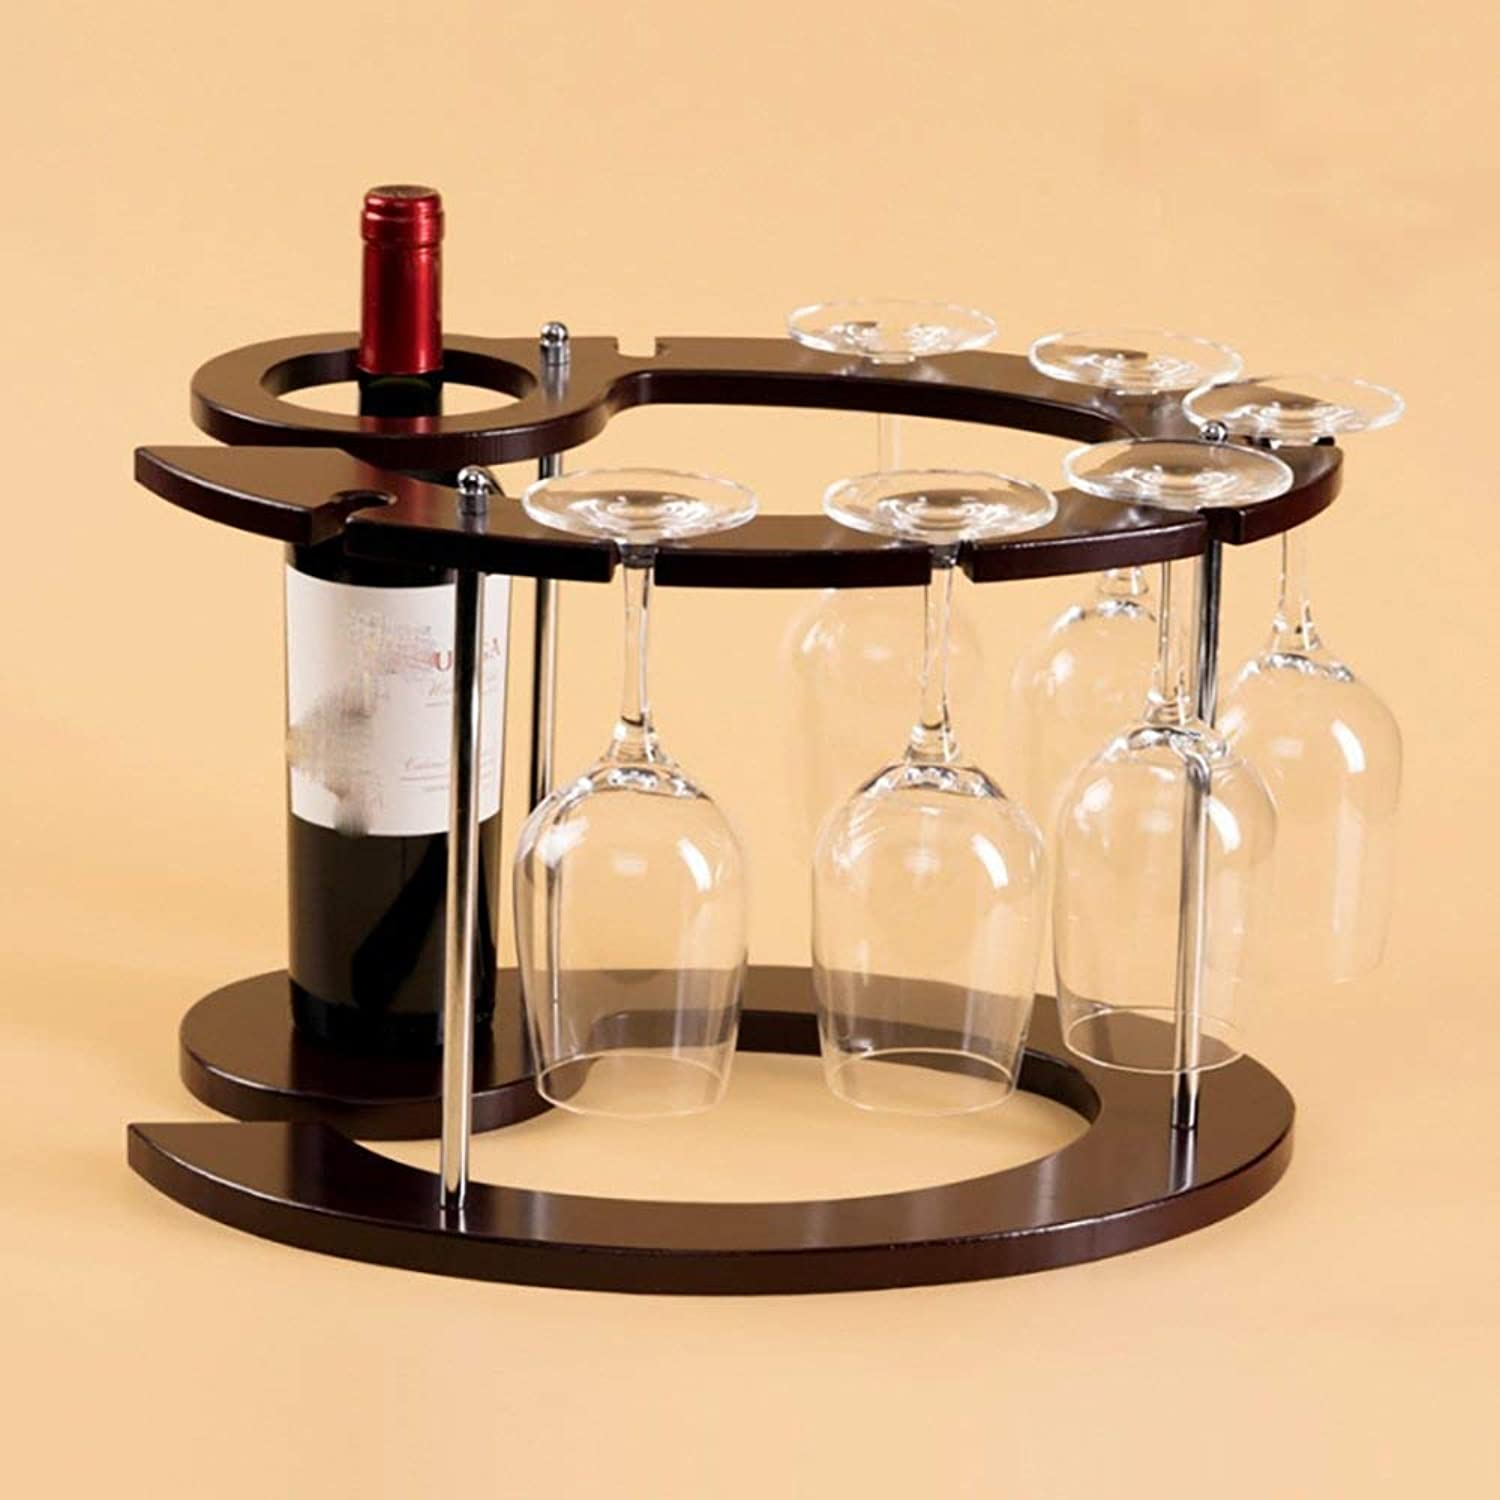 Red Wine Shelf Wine racks Grapevine Grape Tall Glass Cup Holder Living Room Wine Cabinet Decorative Display Stand Wine cabinet (color   A, Size   (44  25  23CM)) ( color   A , Size   (442523CM) )